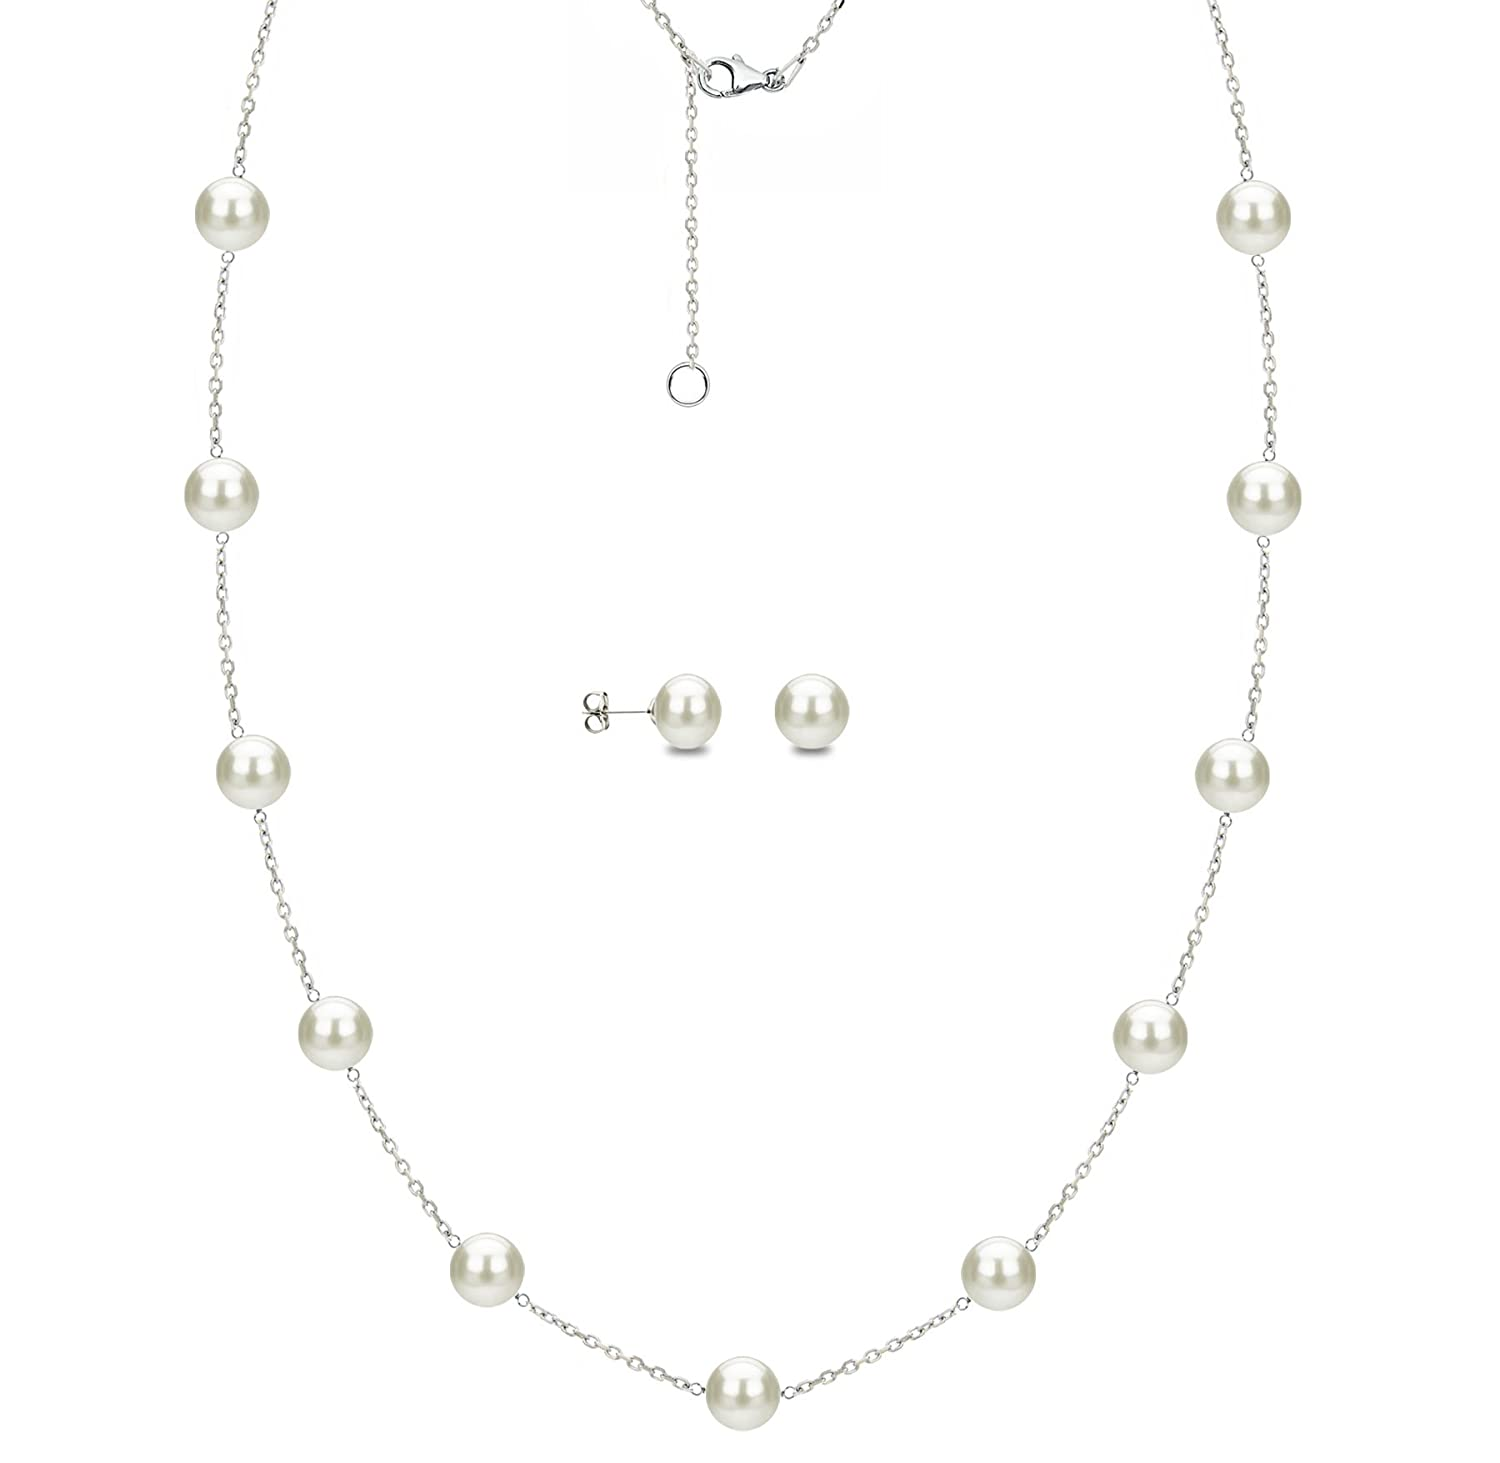 Sterling Silver 7-7.5mm White Freshwater Cultured Pearl Station Necklace and Stud Earrings Set